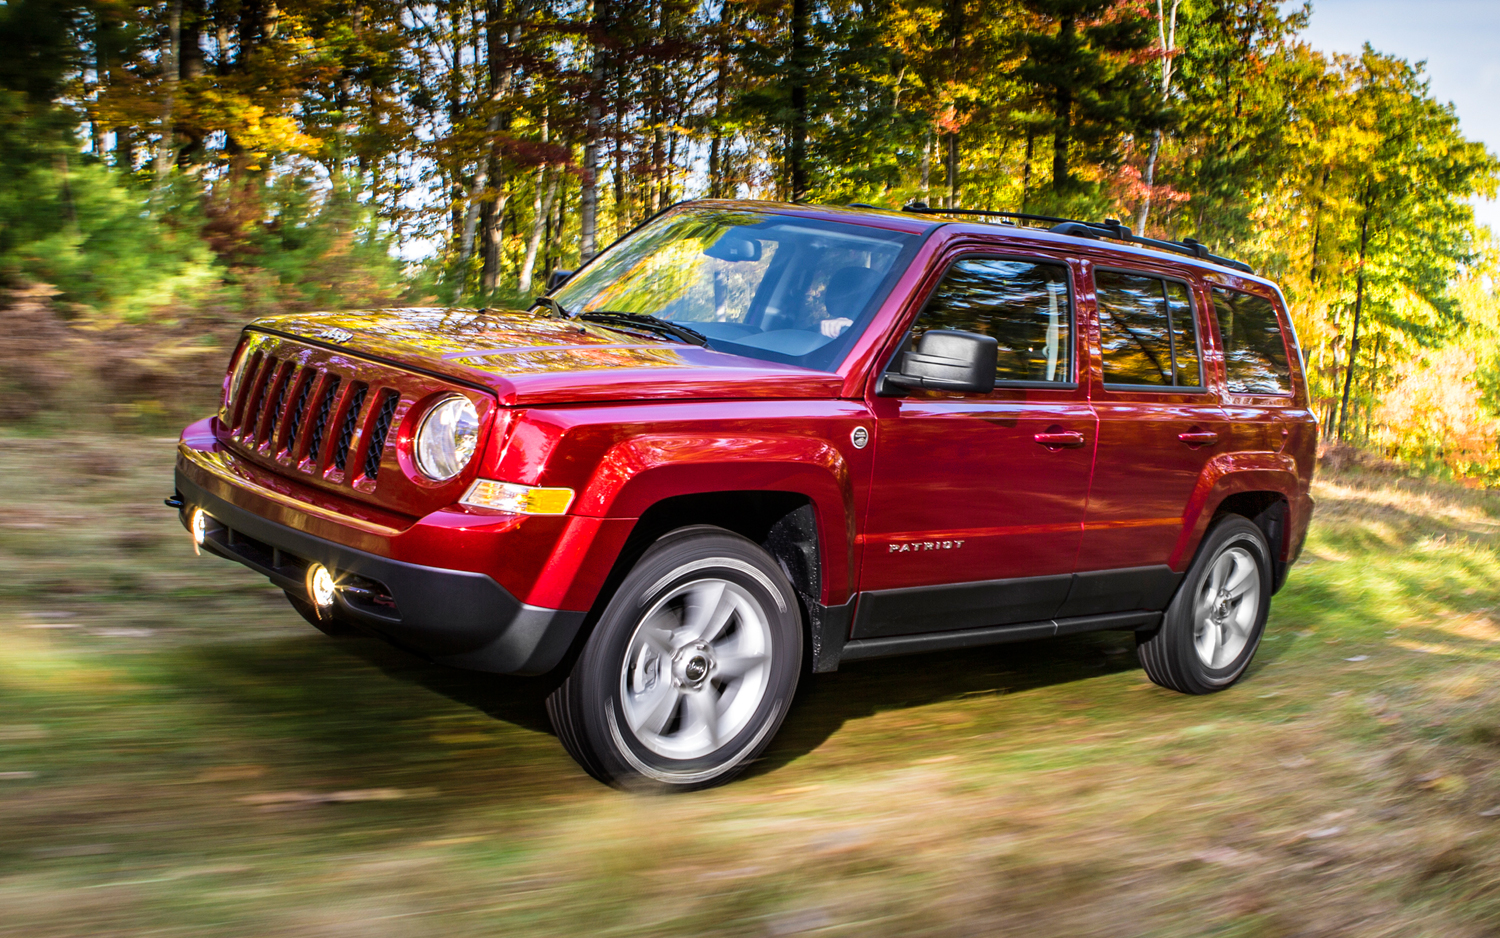 2014 jeep patriot pictures information and specs auto. Black Bedroom Furniture Sets. Home Design Ideas